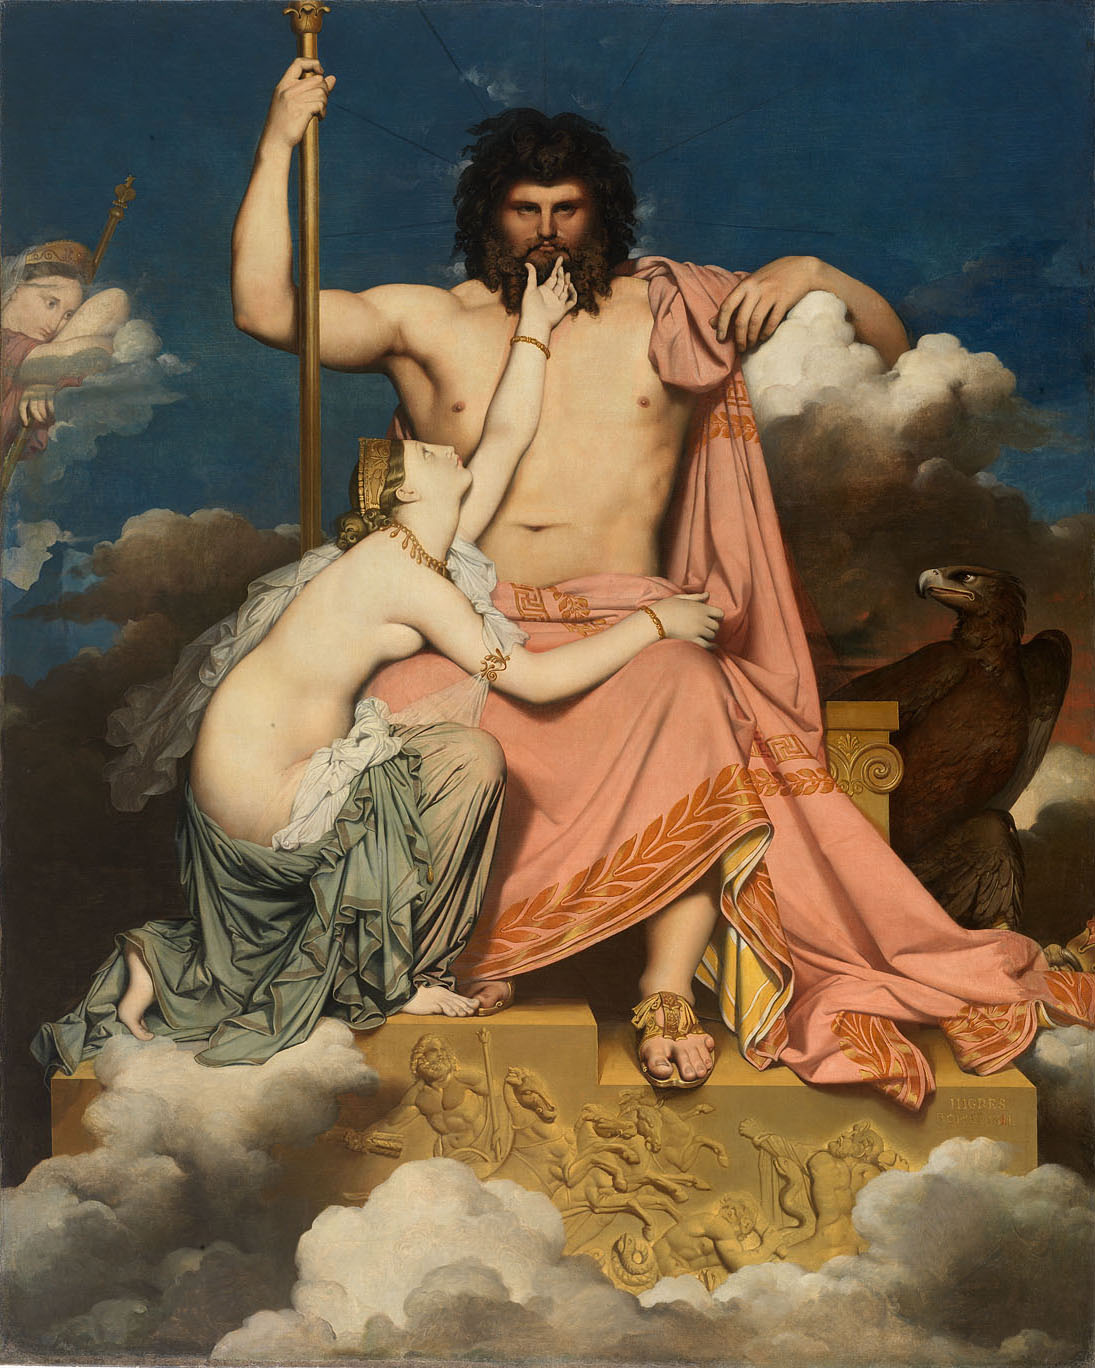 """""""Jupiter et Thétis"""" by Jean Auguste Dominique Ingres, 1811. Ingres is such a wonderful weirdo! This is a scene from  The Iliad  where Thetis begs Zeus to intervene on behalf of her son, Achilles. Jupiter is the Roman name for Zeus. The spouse of Zeus, Hera, is on the far left as a distant spectator. In my book, Zeus and Hera sit right next to each other. But, really, Ingres is weird! I mean, look at Zeus' toes!"""